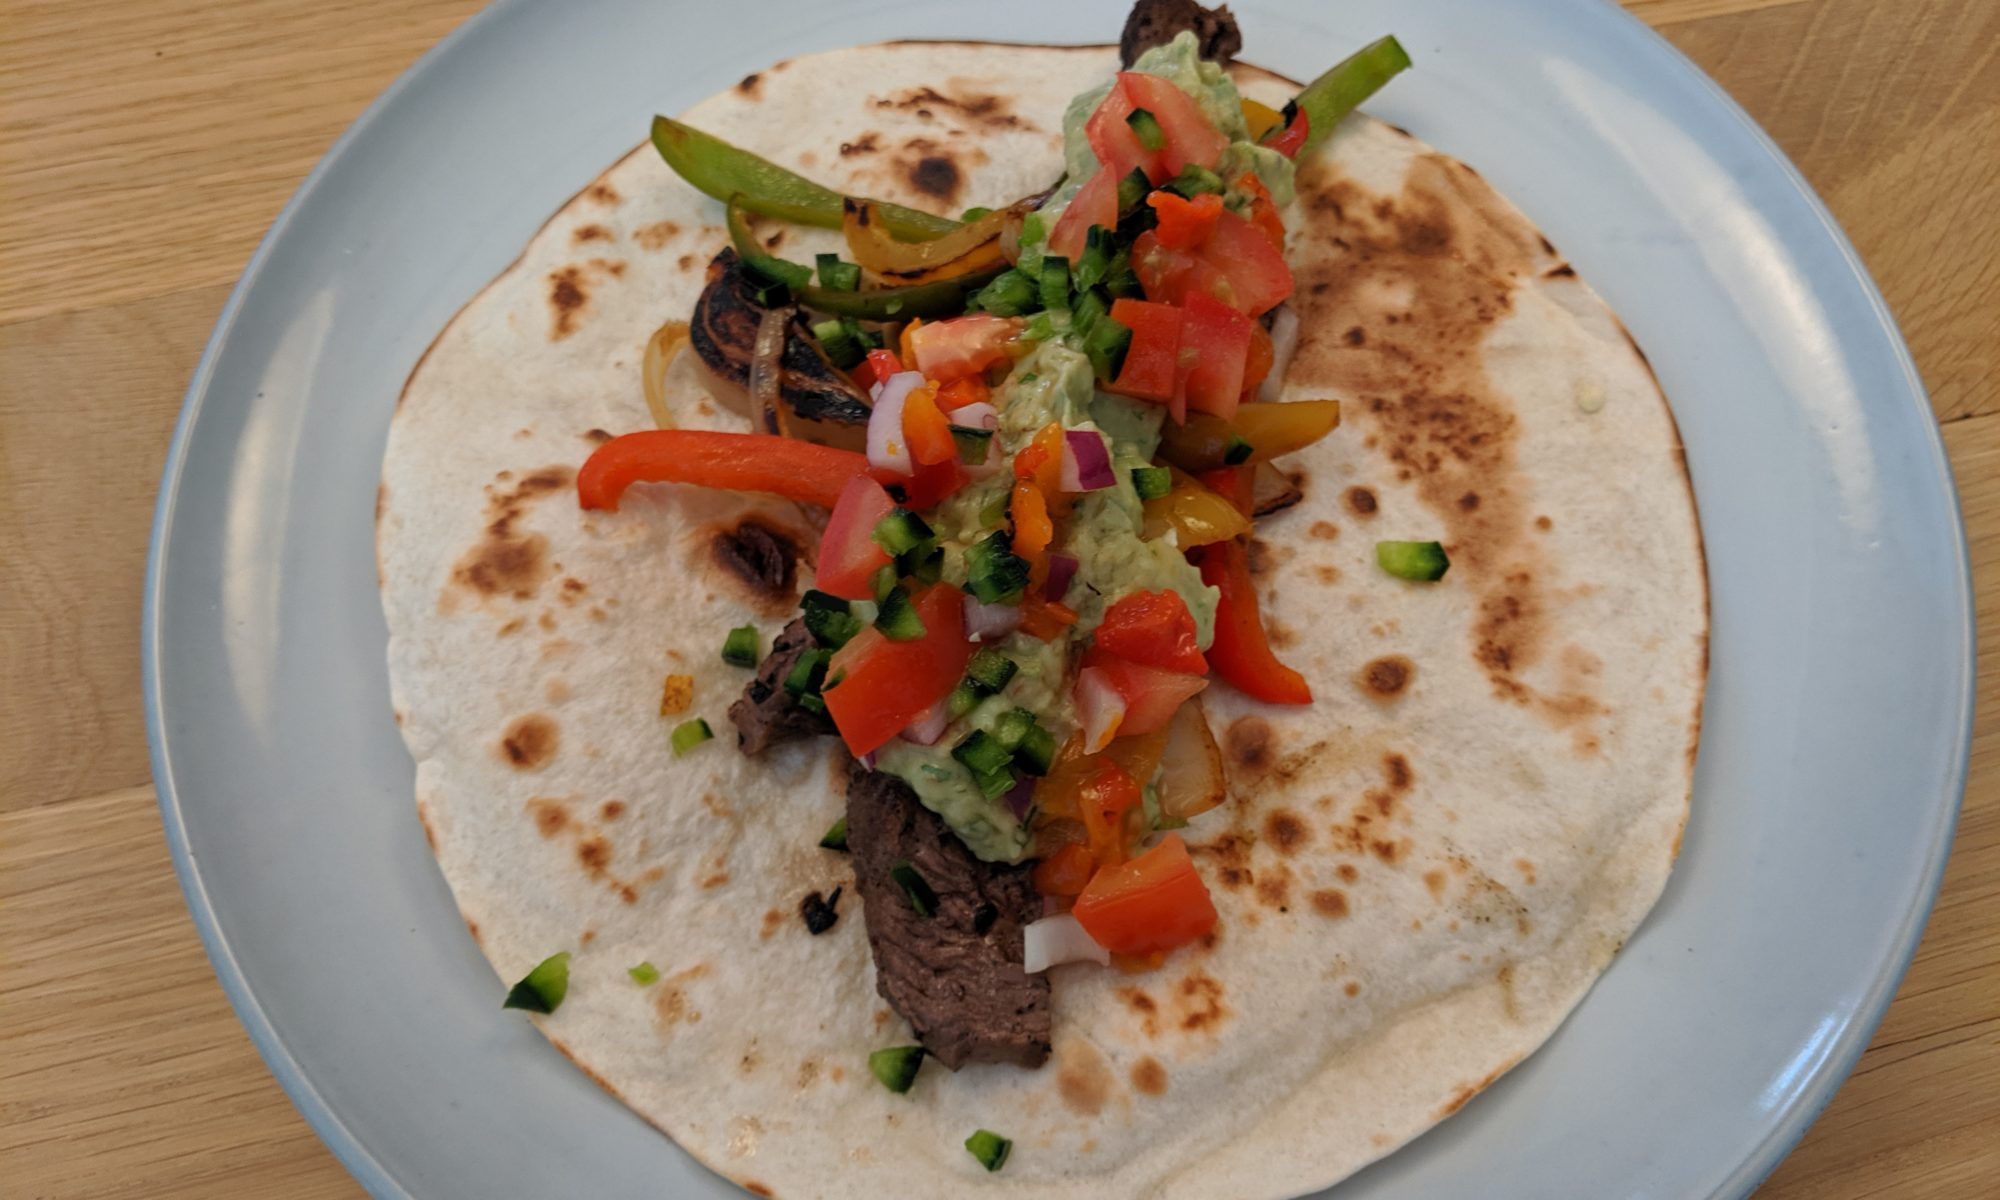 Steak fajitas mexicaans guacamole pico de gallo